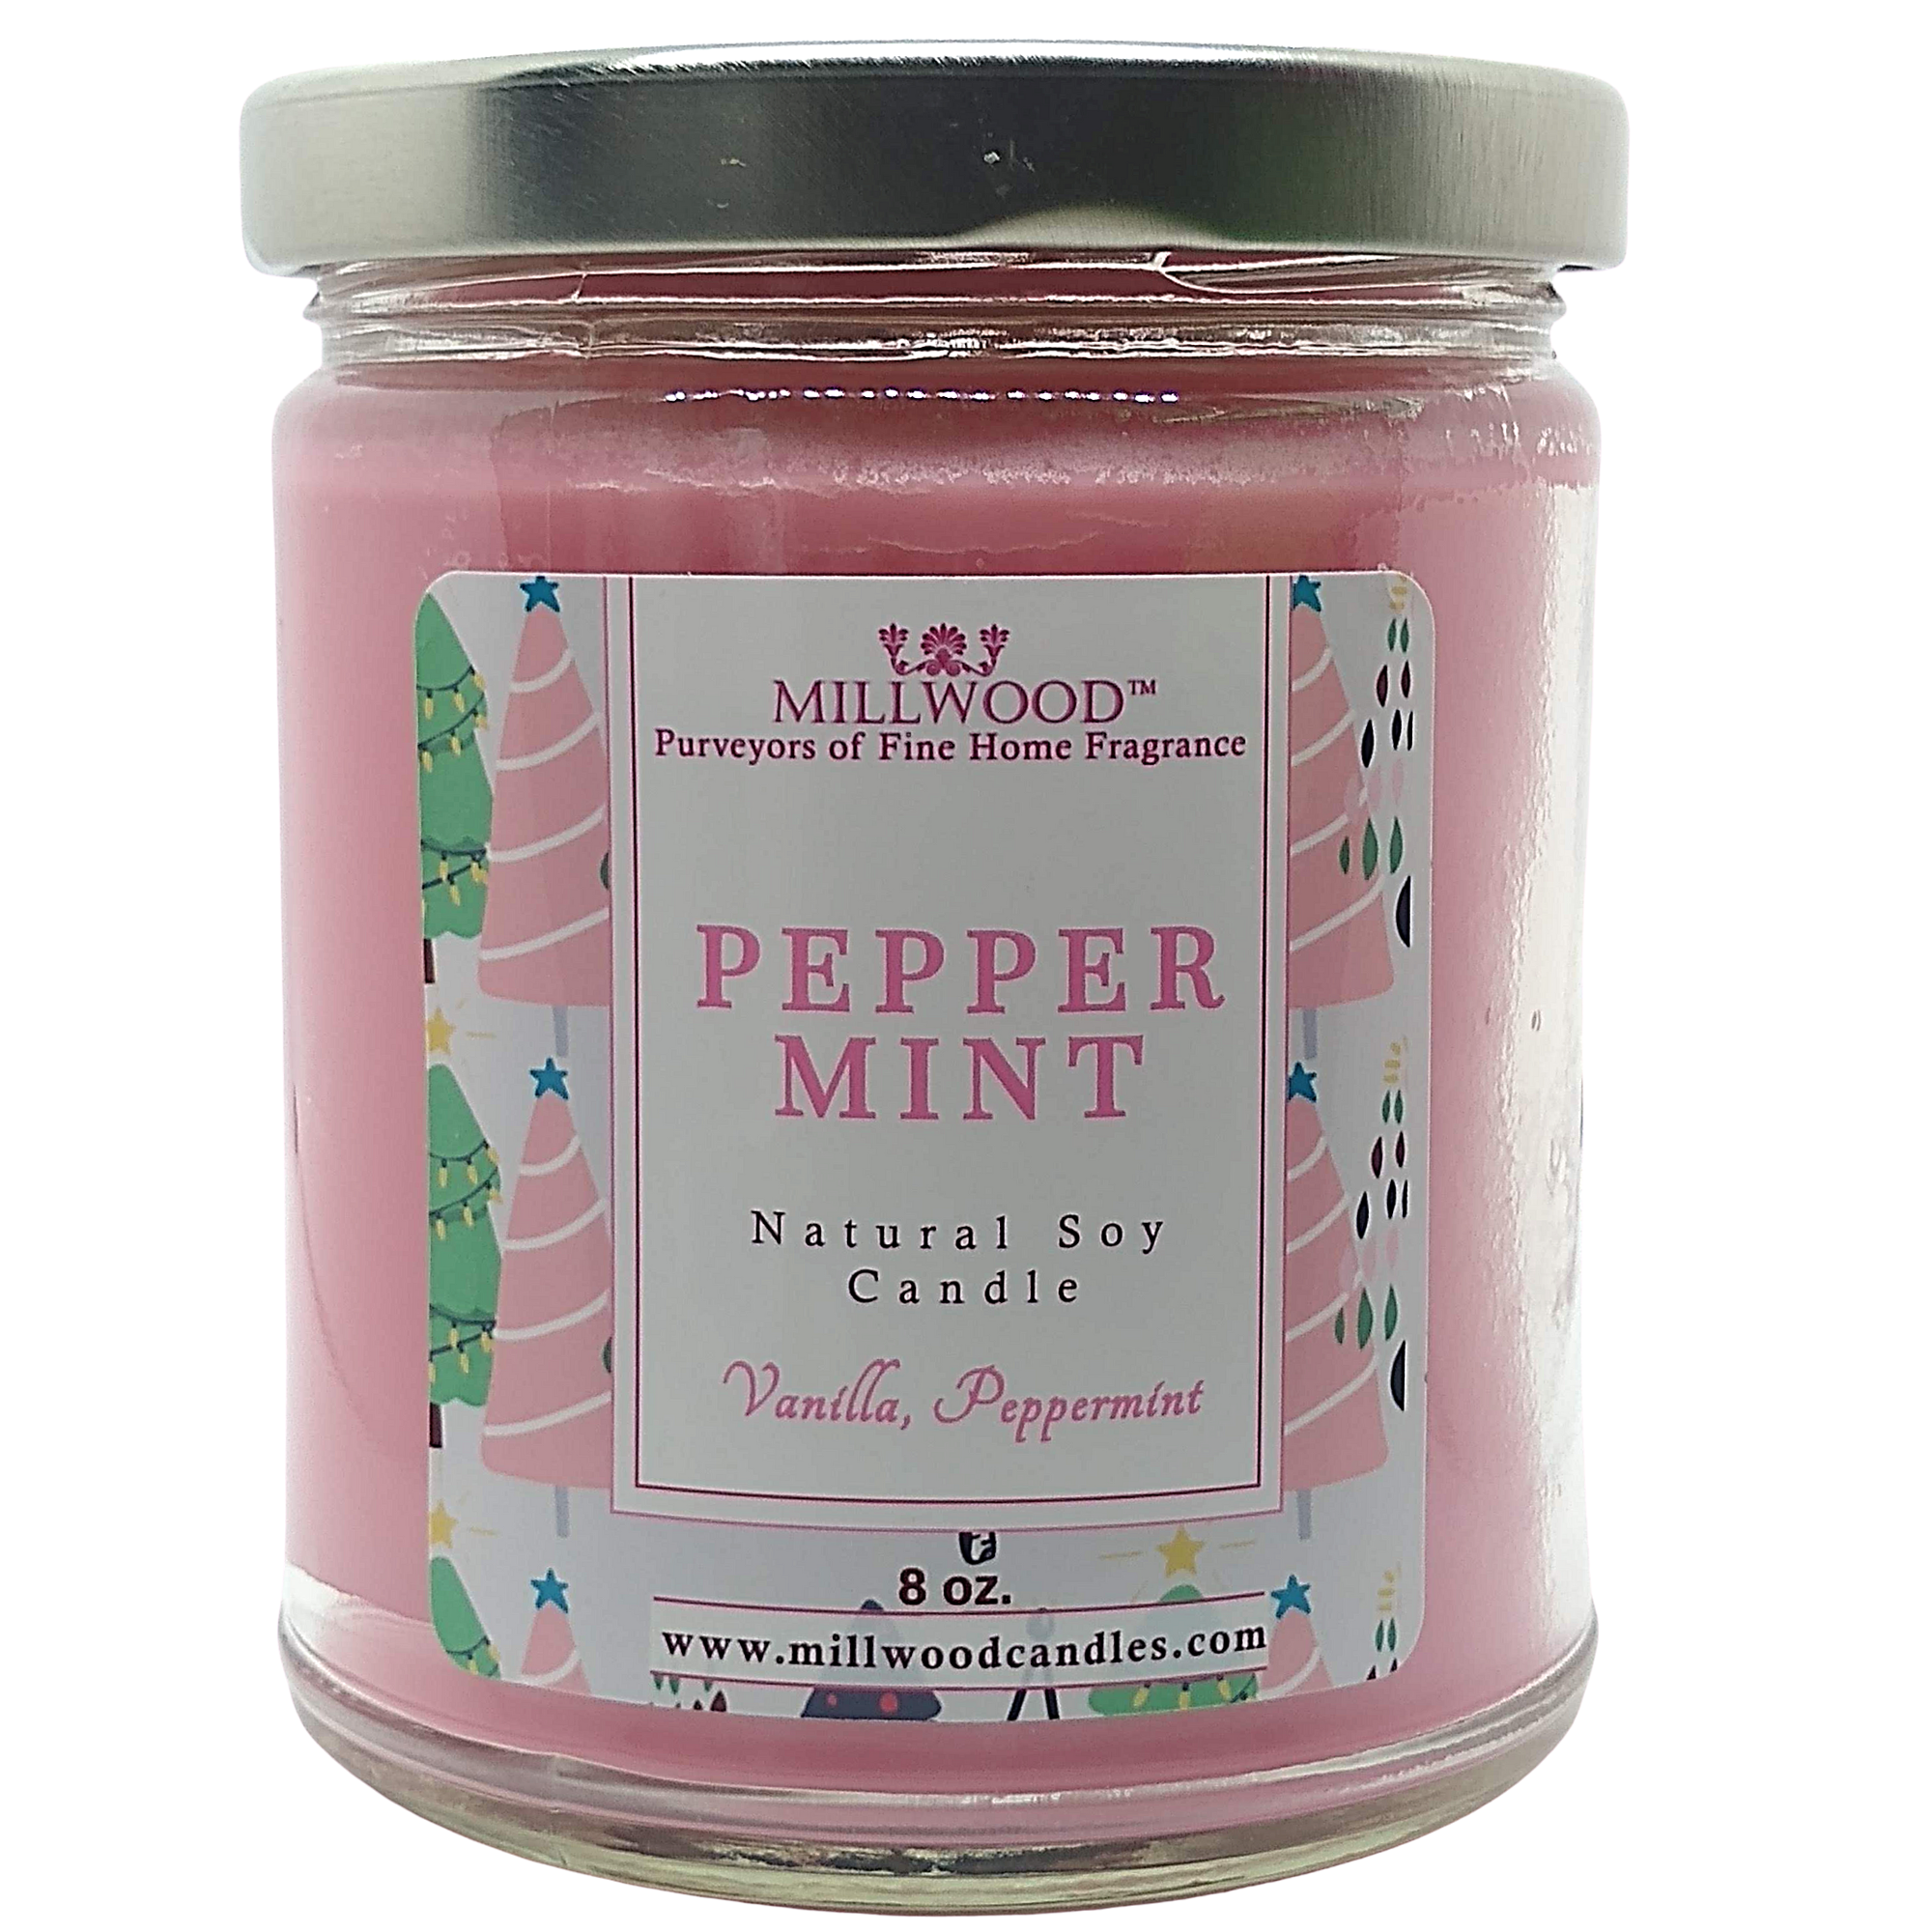 Peppermint Candy Cane soy candle by Millwood Candles